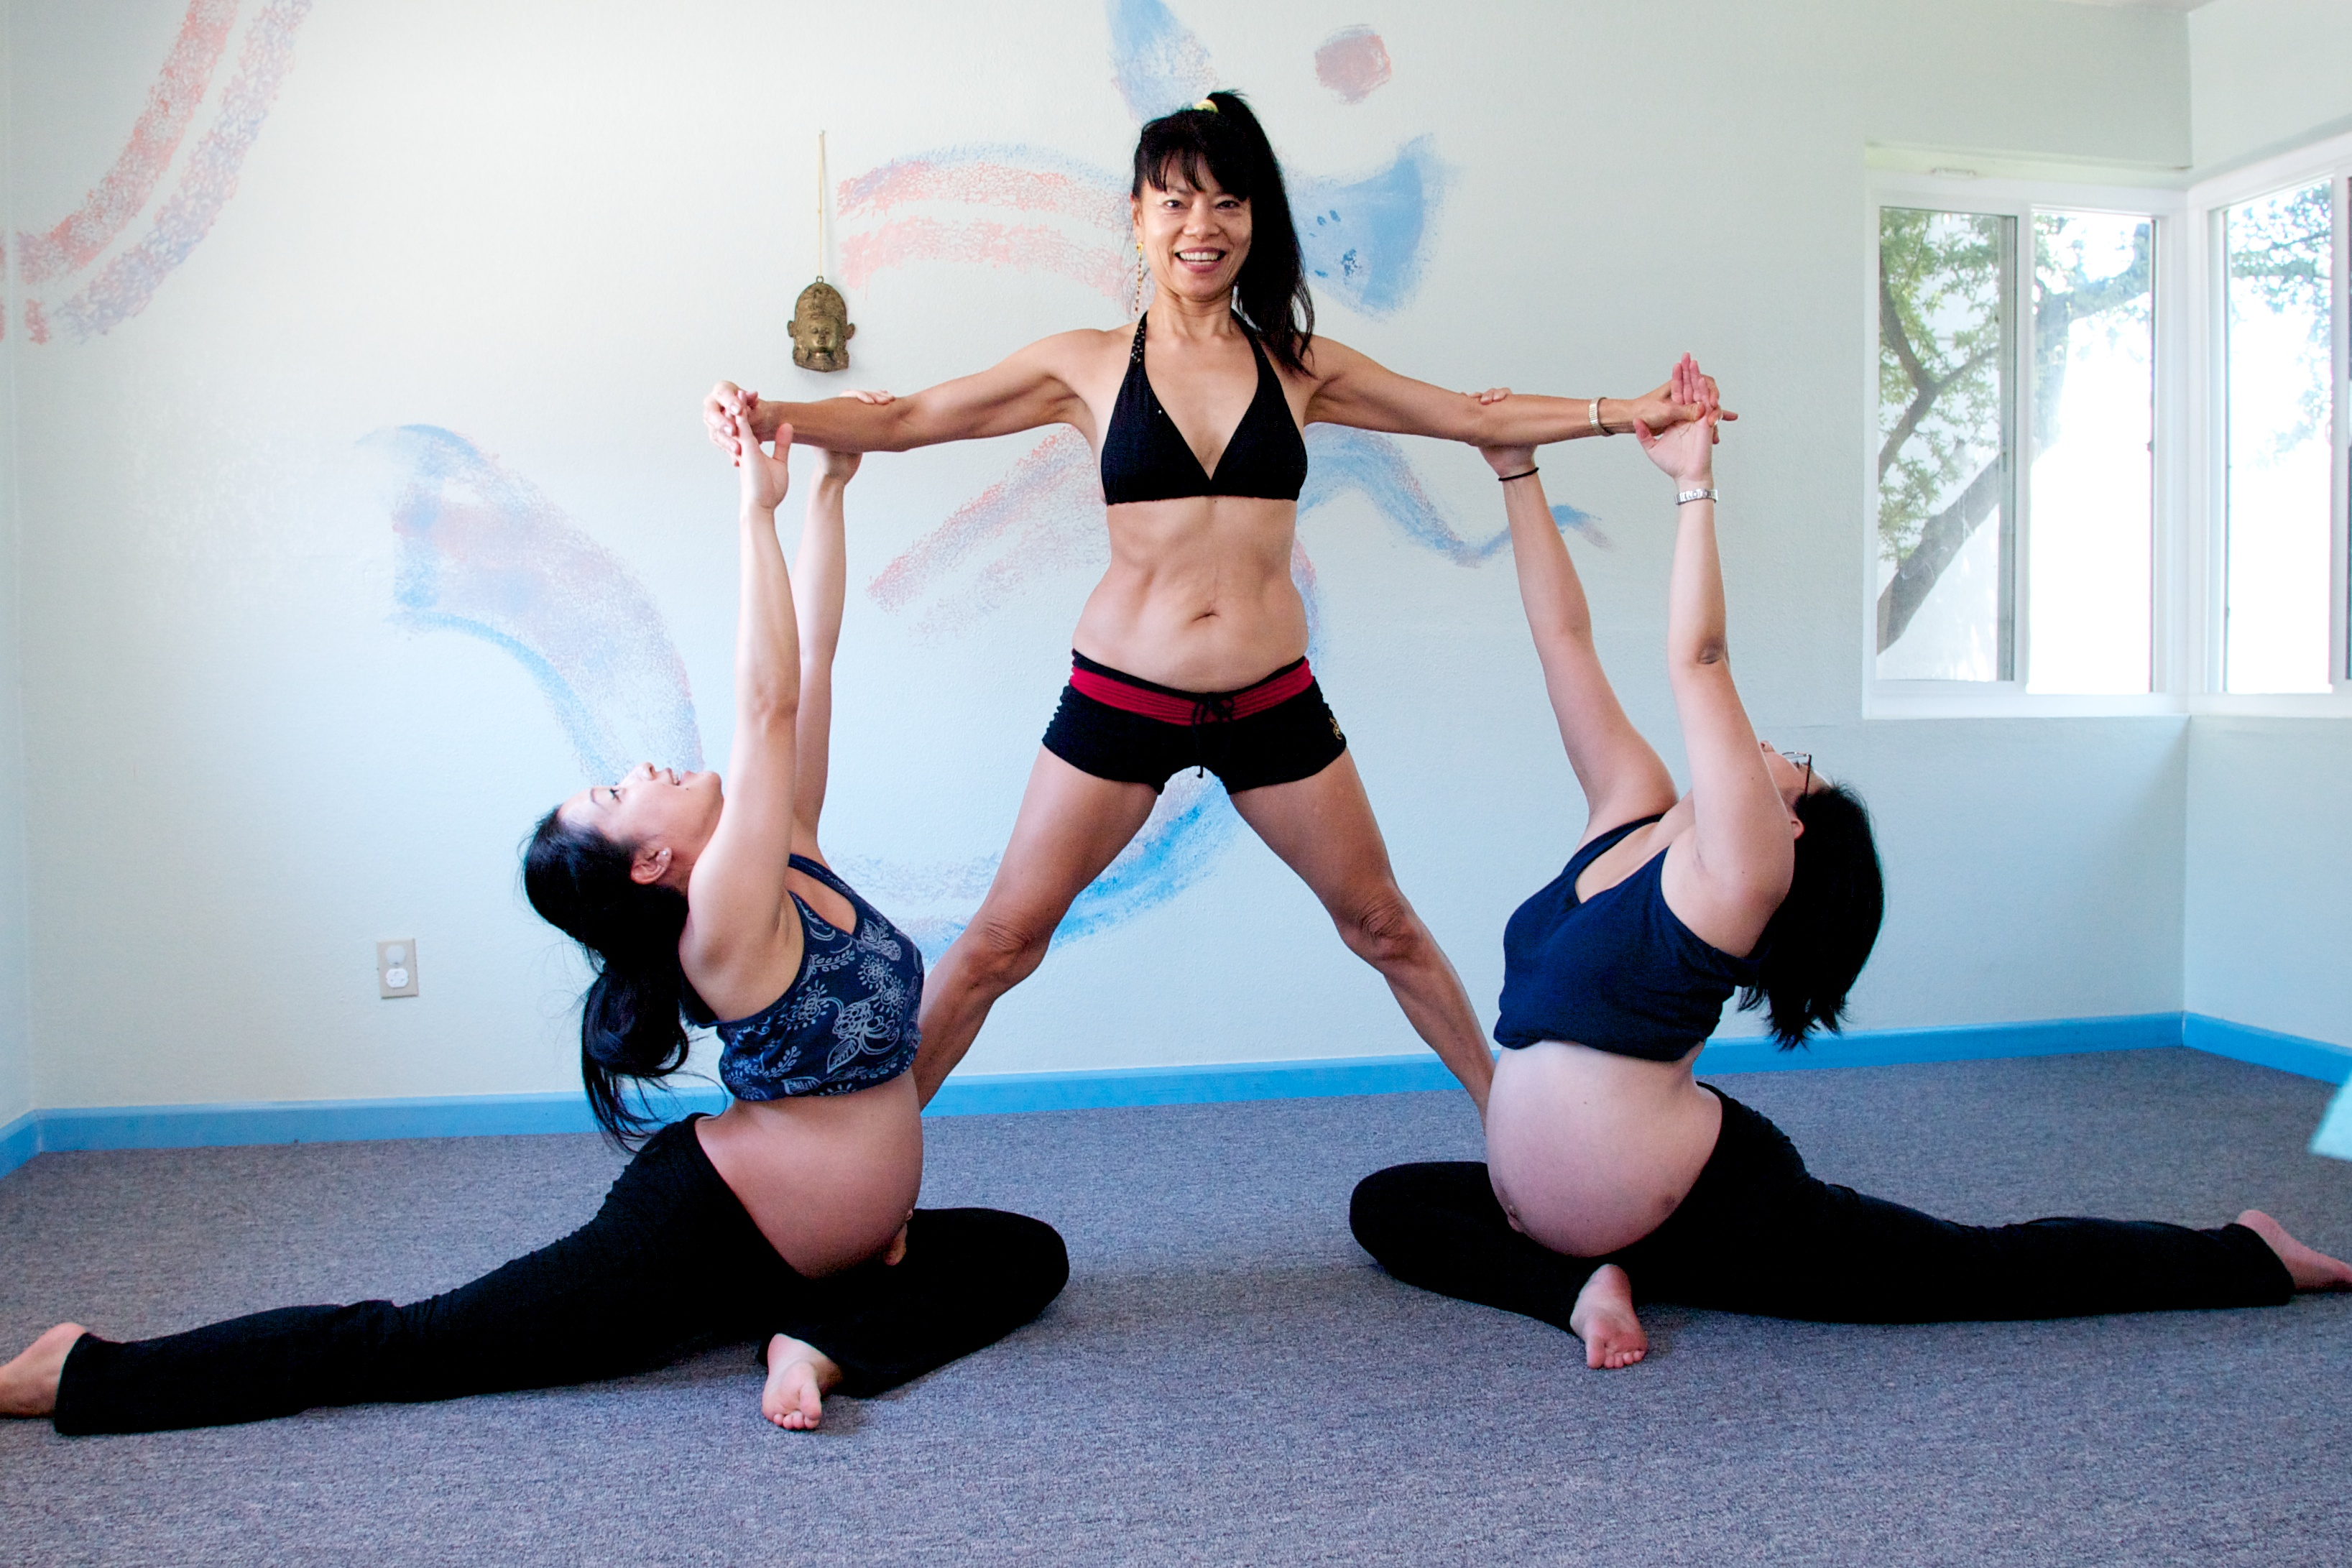 Sherry Han Is An Amazing Yoga Instructor